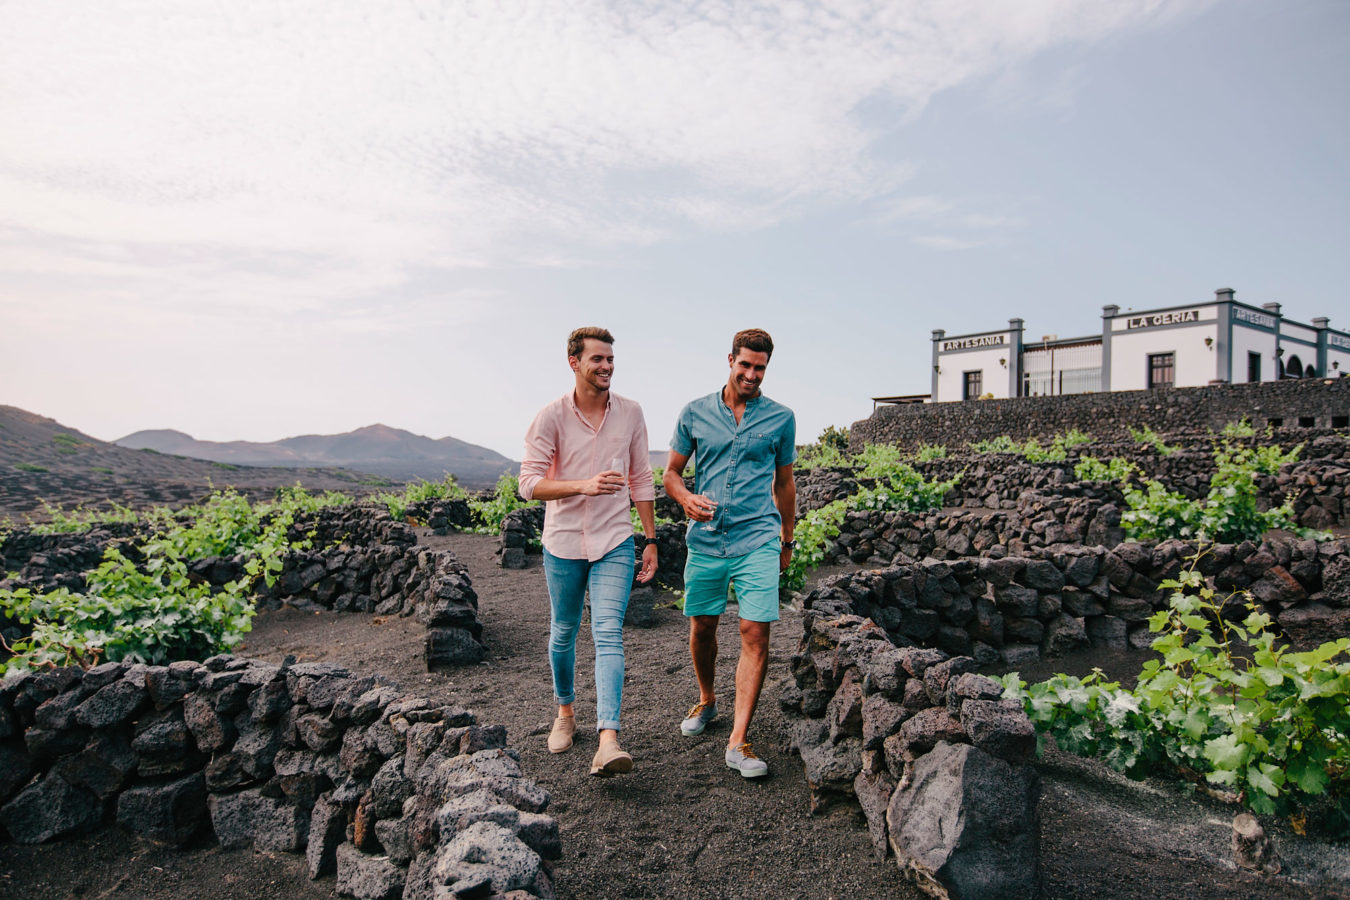 Two young men walking through the black lava rock at the vineyards on Lanzarote Island.